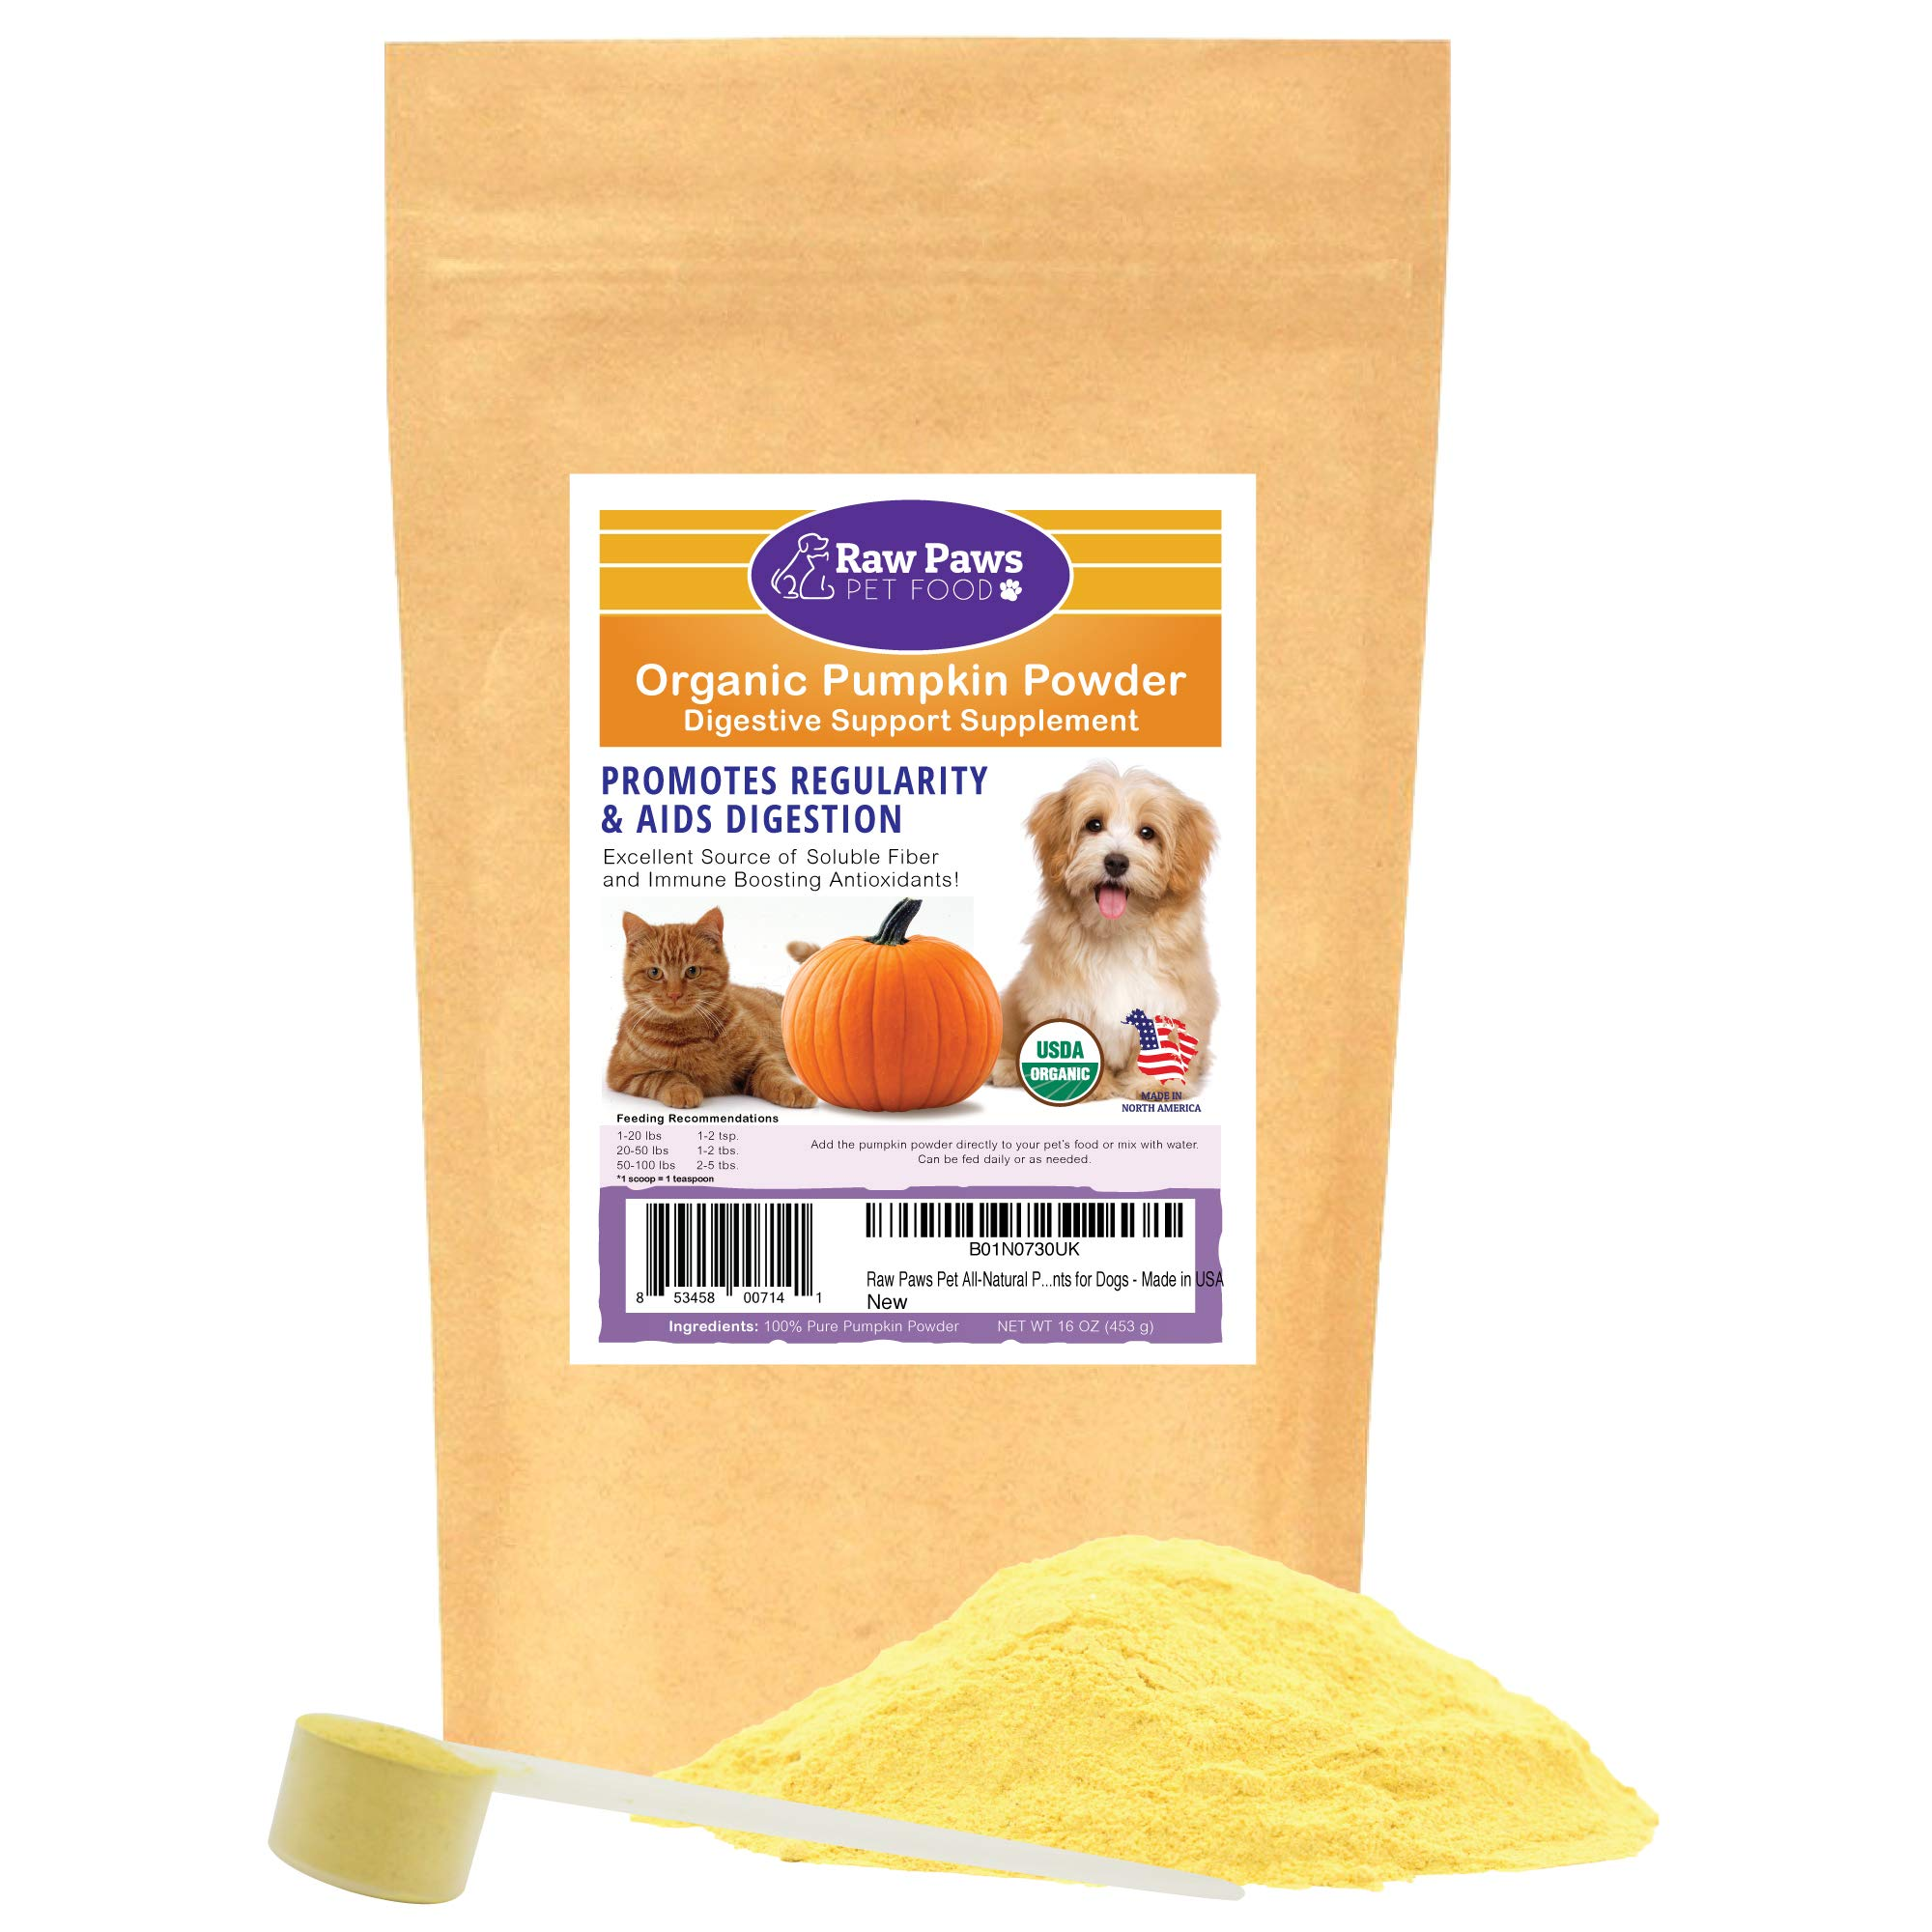 Raw Paws Pet Organic Pure Pumpkin for Dogs & Cats, Powder 16-oz - Fiber for Dogs - Cat & Dog Digestive Supplement for Healthy Stool, Regularity, Dog Gas Relief & Anti Scoot - Cat & Dog Diarrhea Relief by Raw Paws